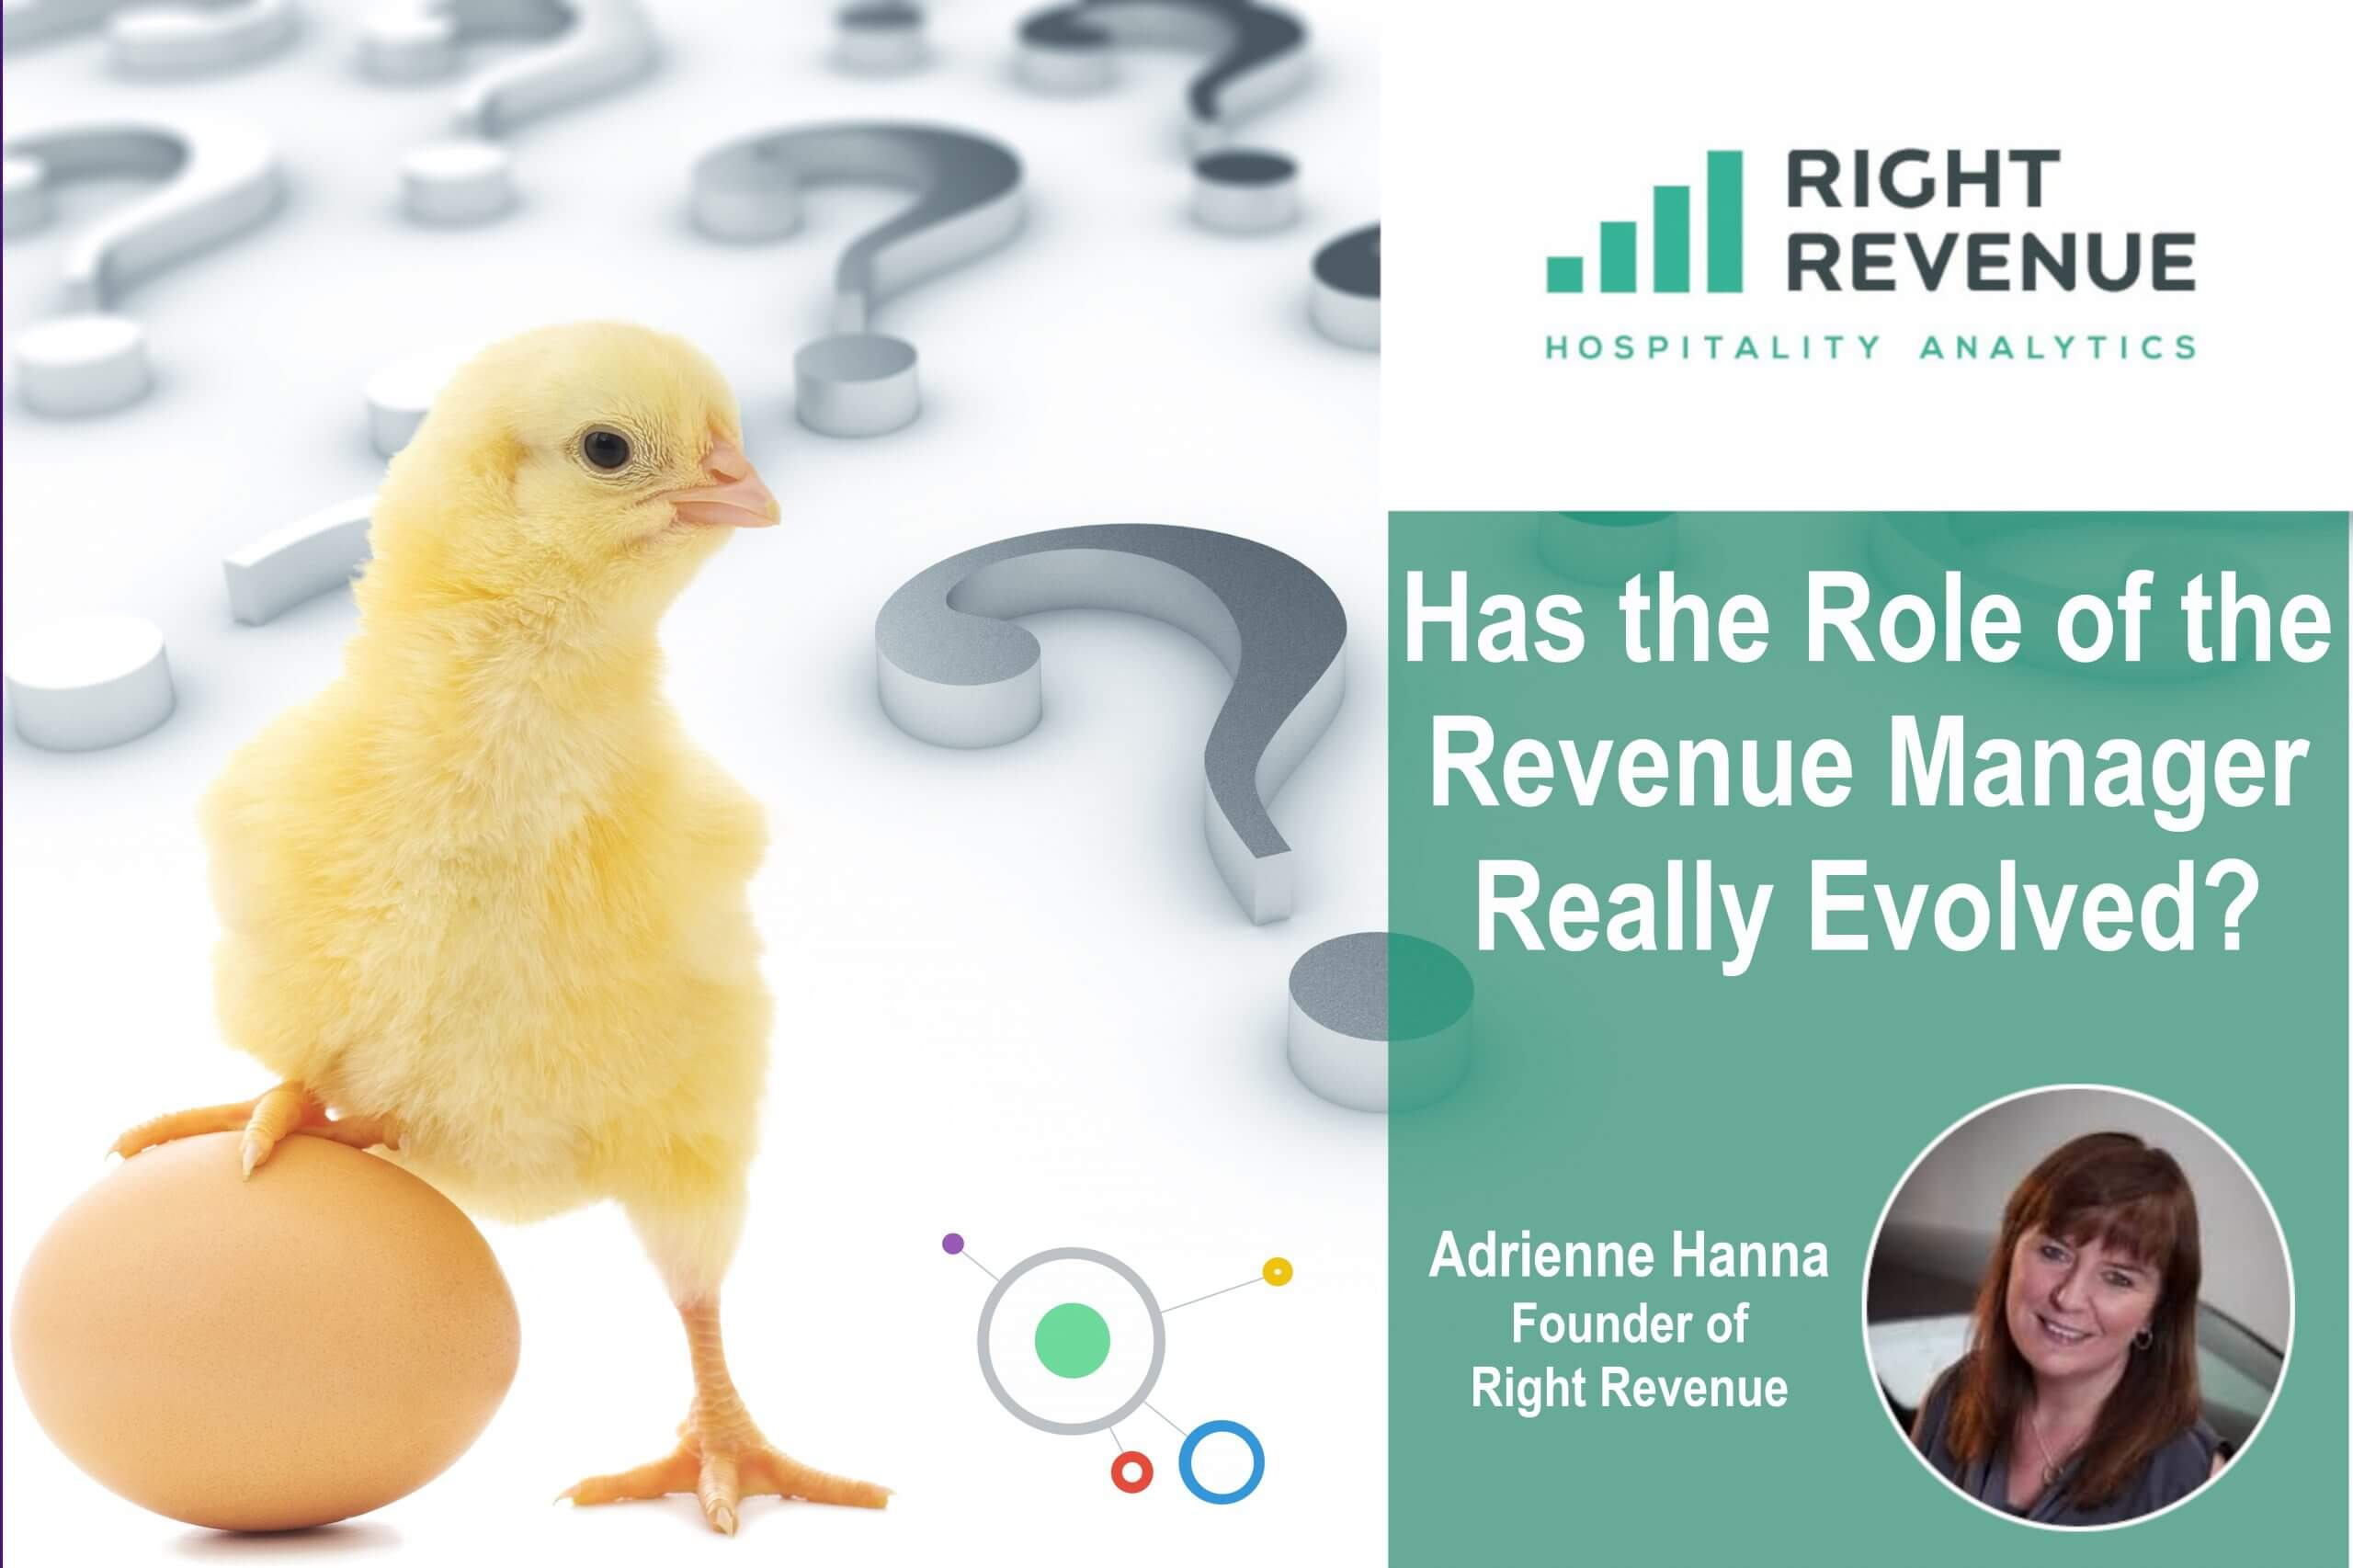 video with adrienne hanna of right revenue asking has the role of the revenue manager really evolved